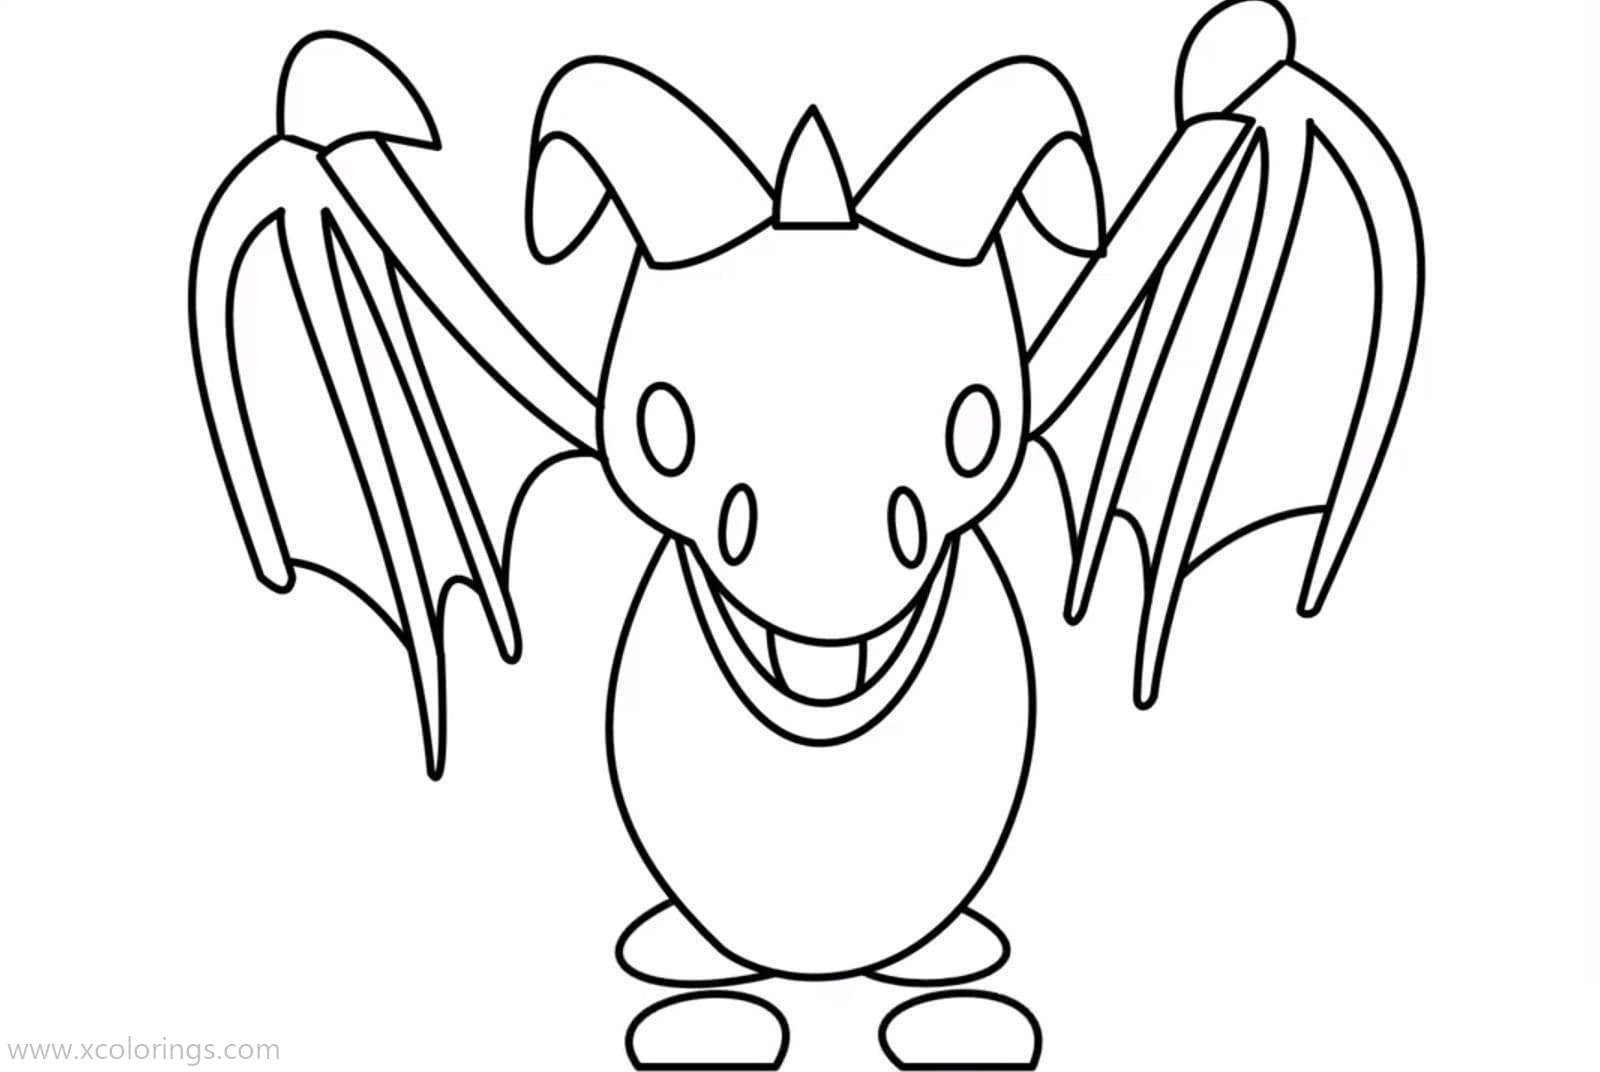 Roblox Adopt Me Coloring Pages Frost Dragon - XColorings.com